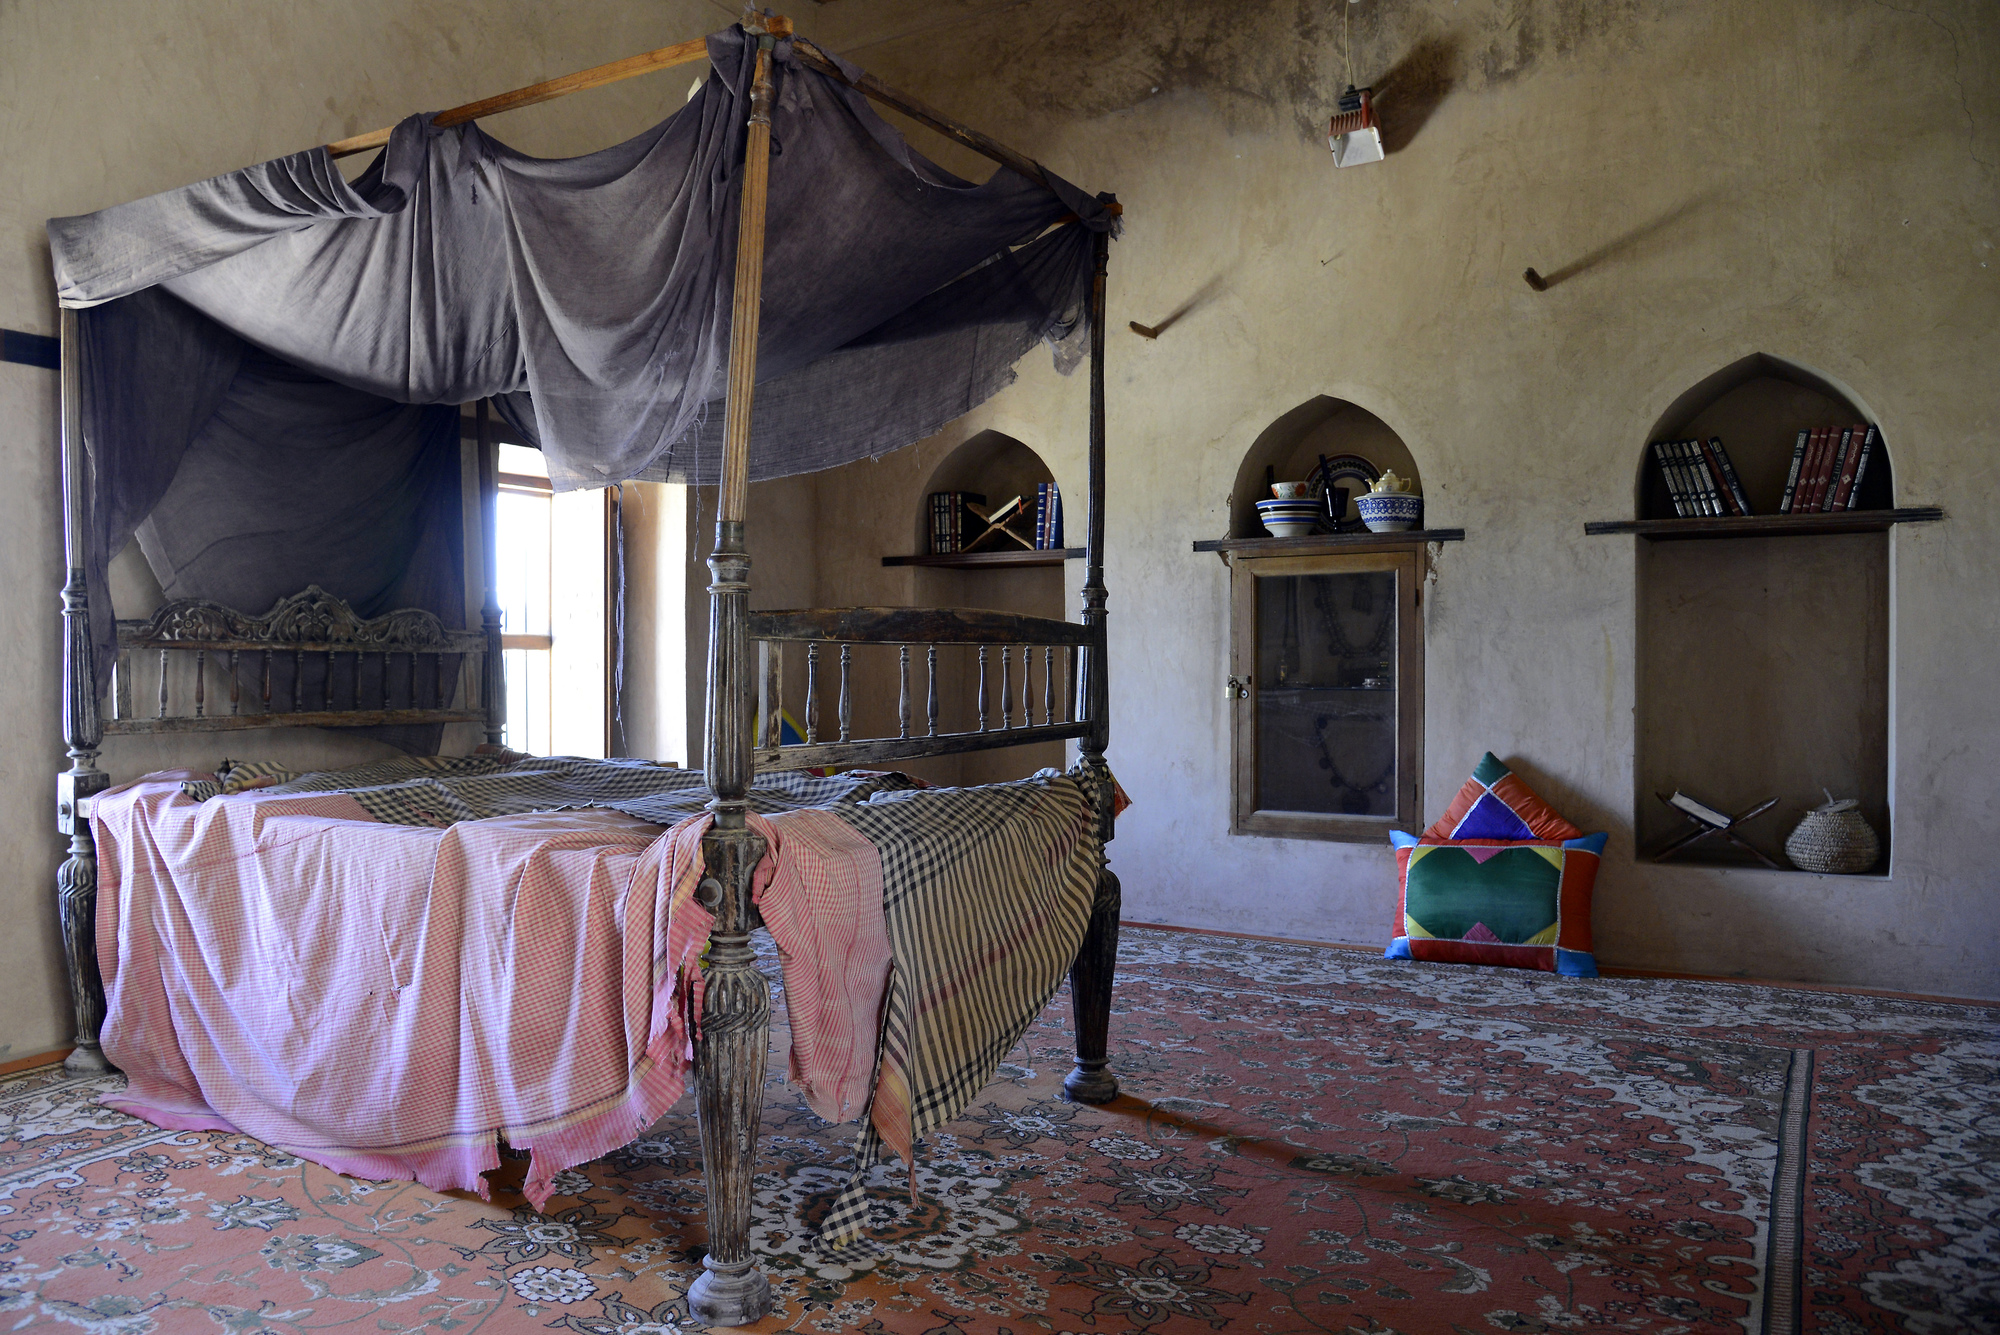 Schlafzimmer Kühlen Im Sommer Nakhal Fort Bedroom Jebel Shams Pictures Oman In Global